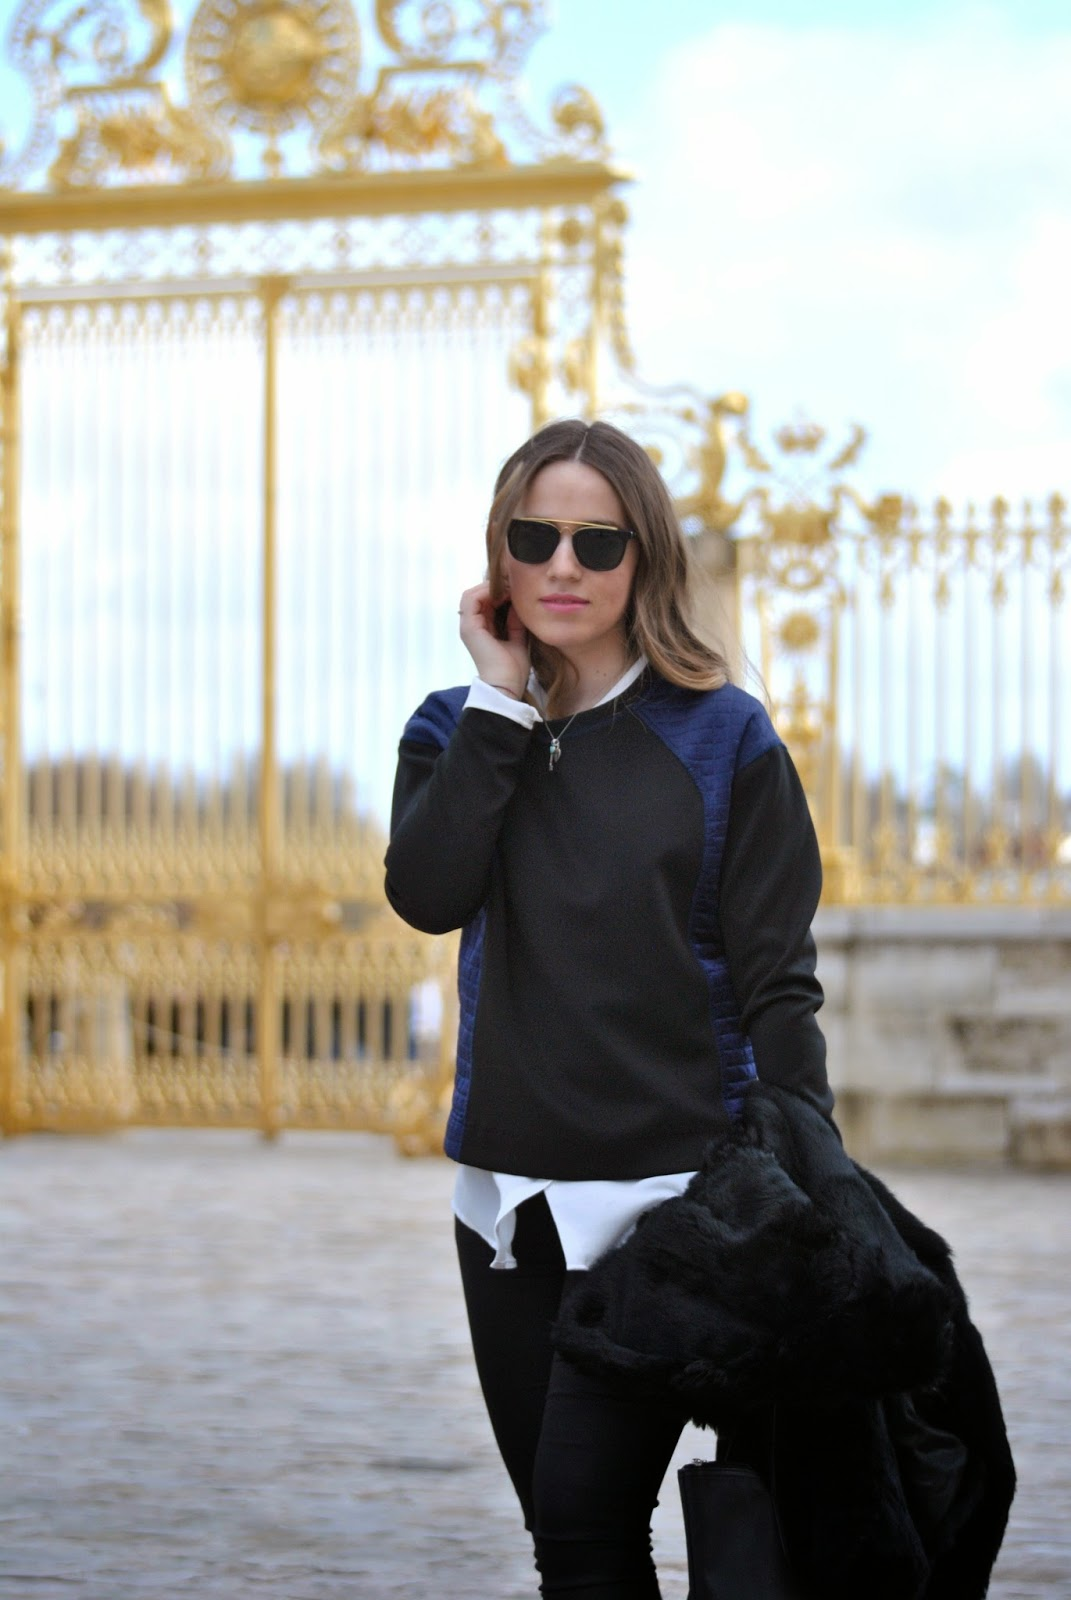 Our experience in Versailles